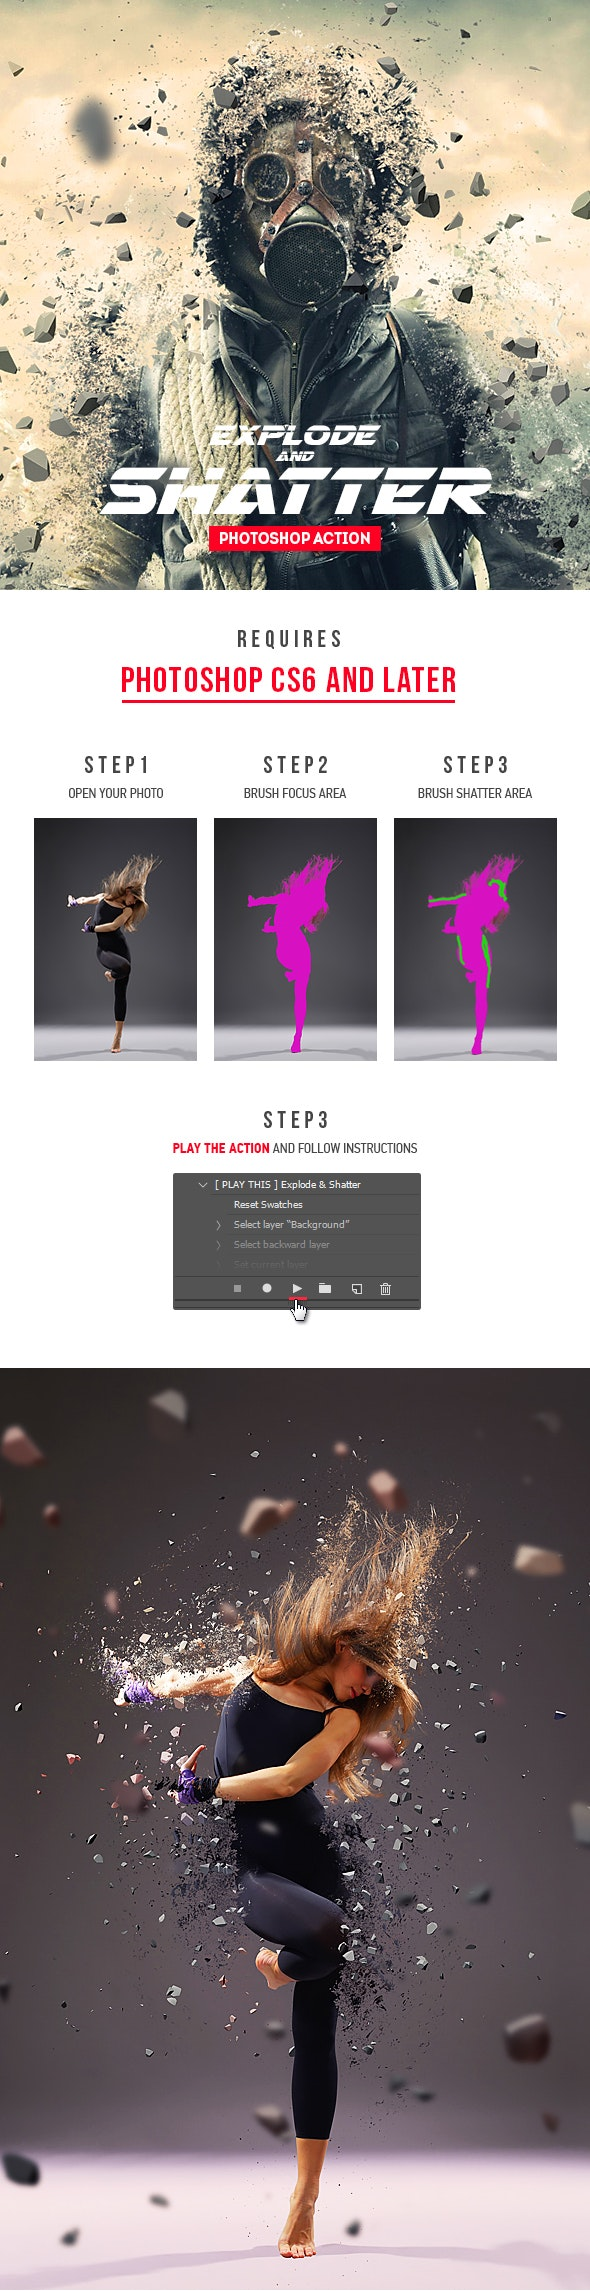 Explode And Shatter Photoshop Action by Ayashi | GraphicRiver